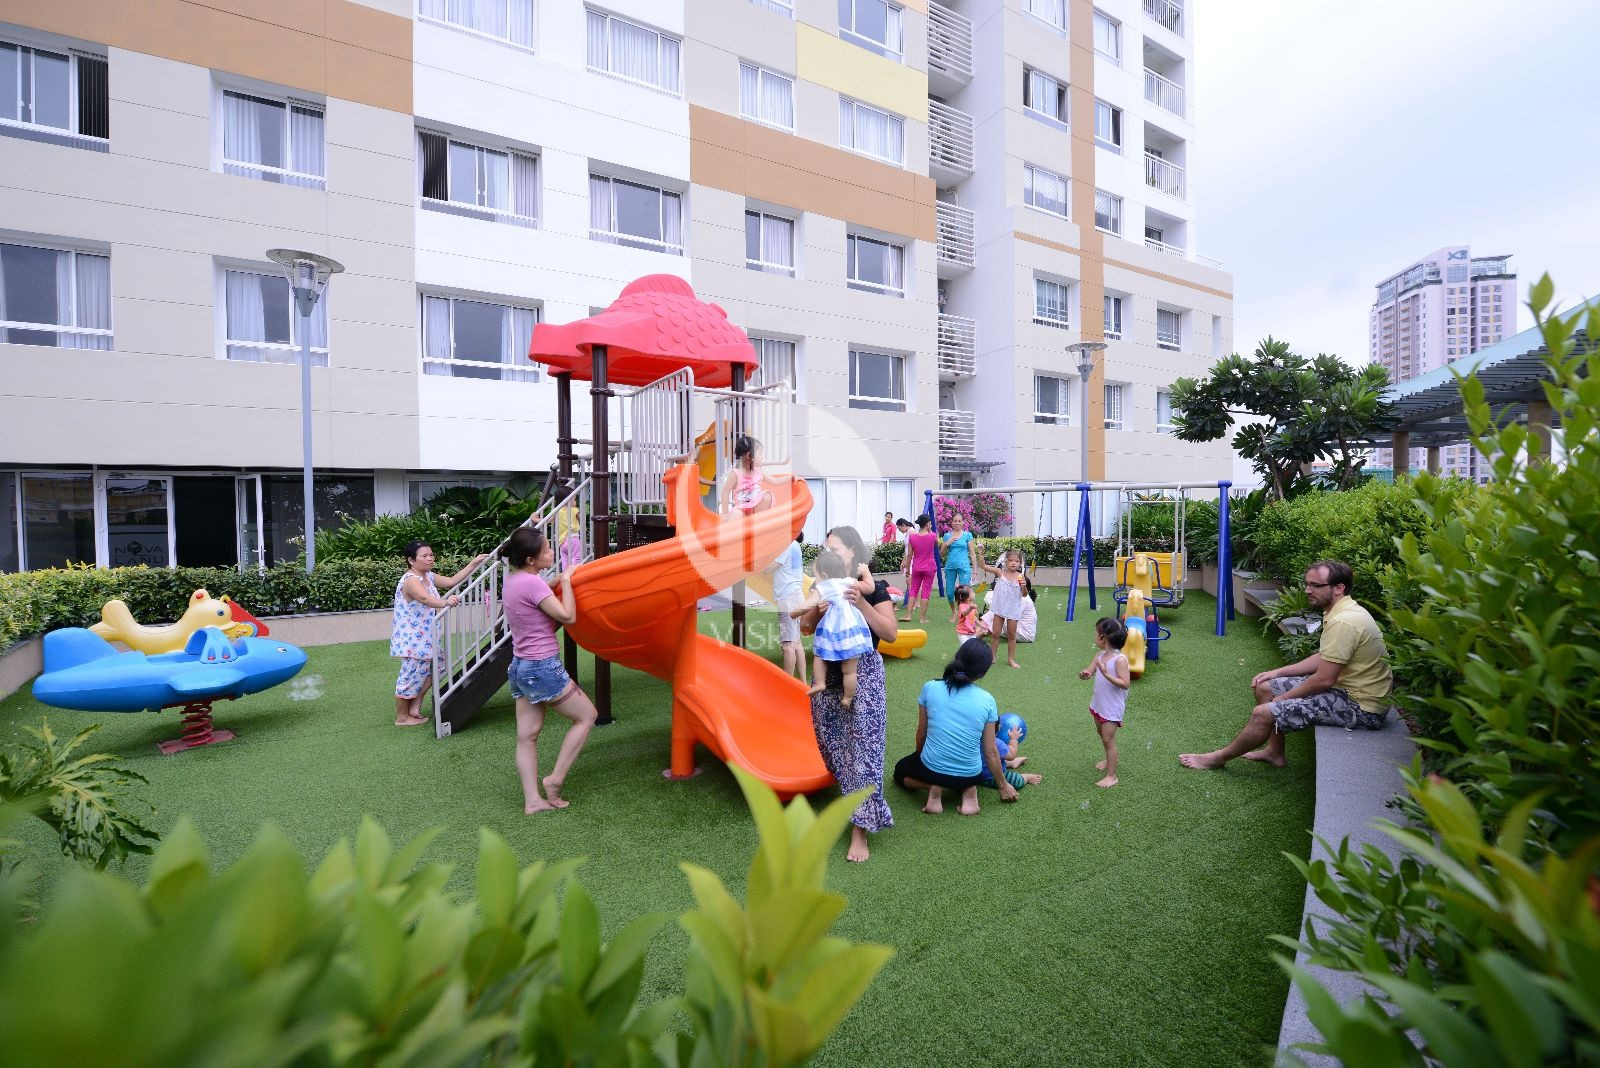 Kids' Kingdom of Tropic Garden Apartment is a place for your children's development. Your beloved babies can freely and wirelessly run around Tropic Garden Thao Dien Apartment for funning activity and scenic entertainment.